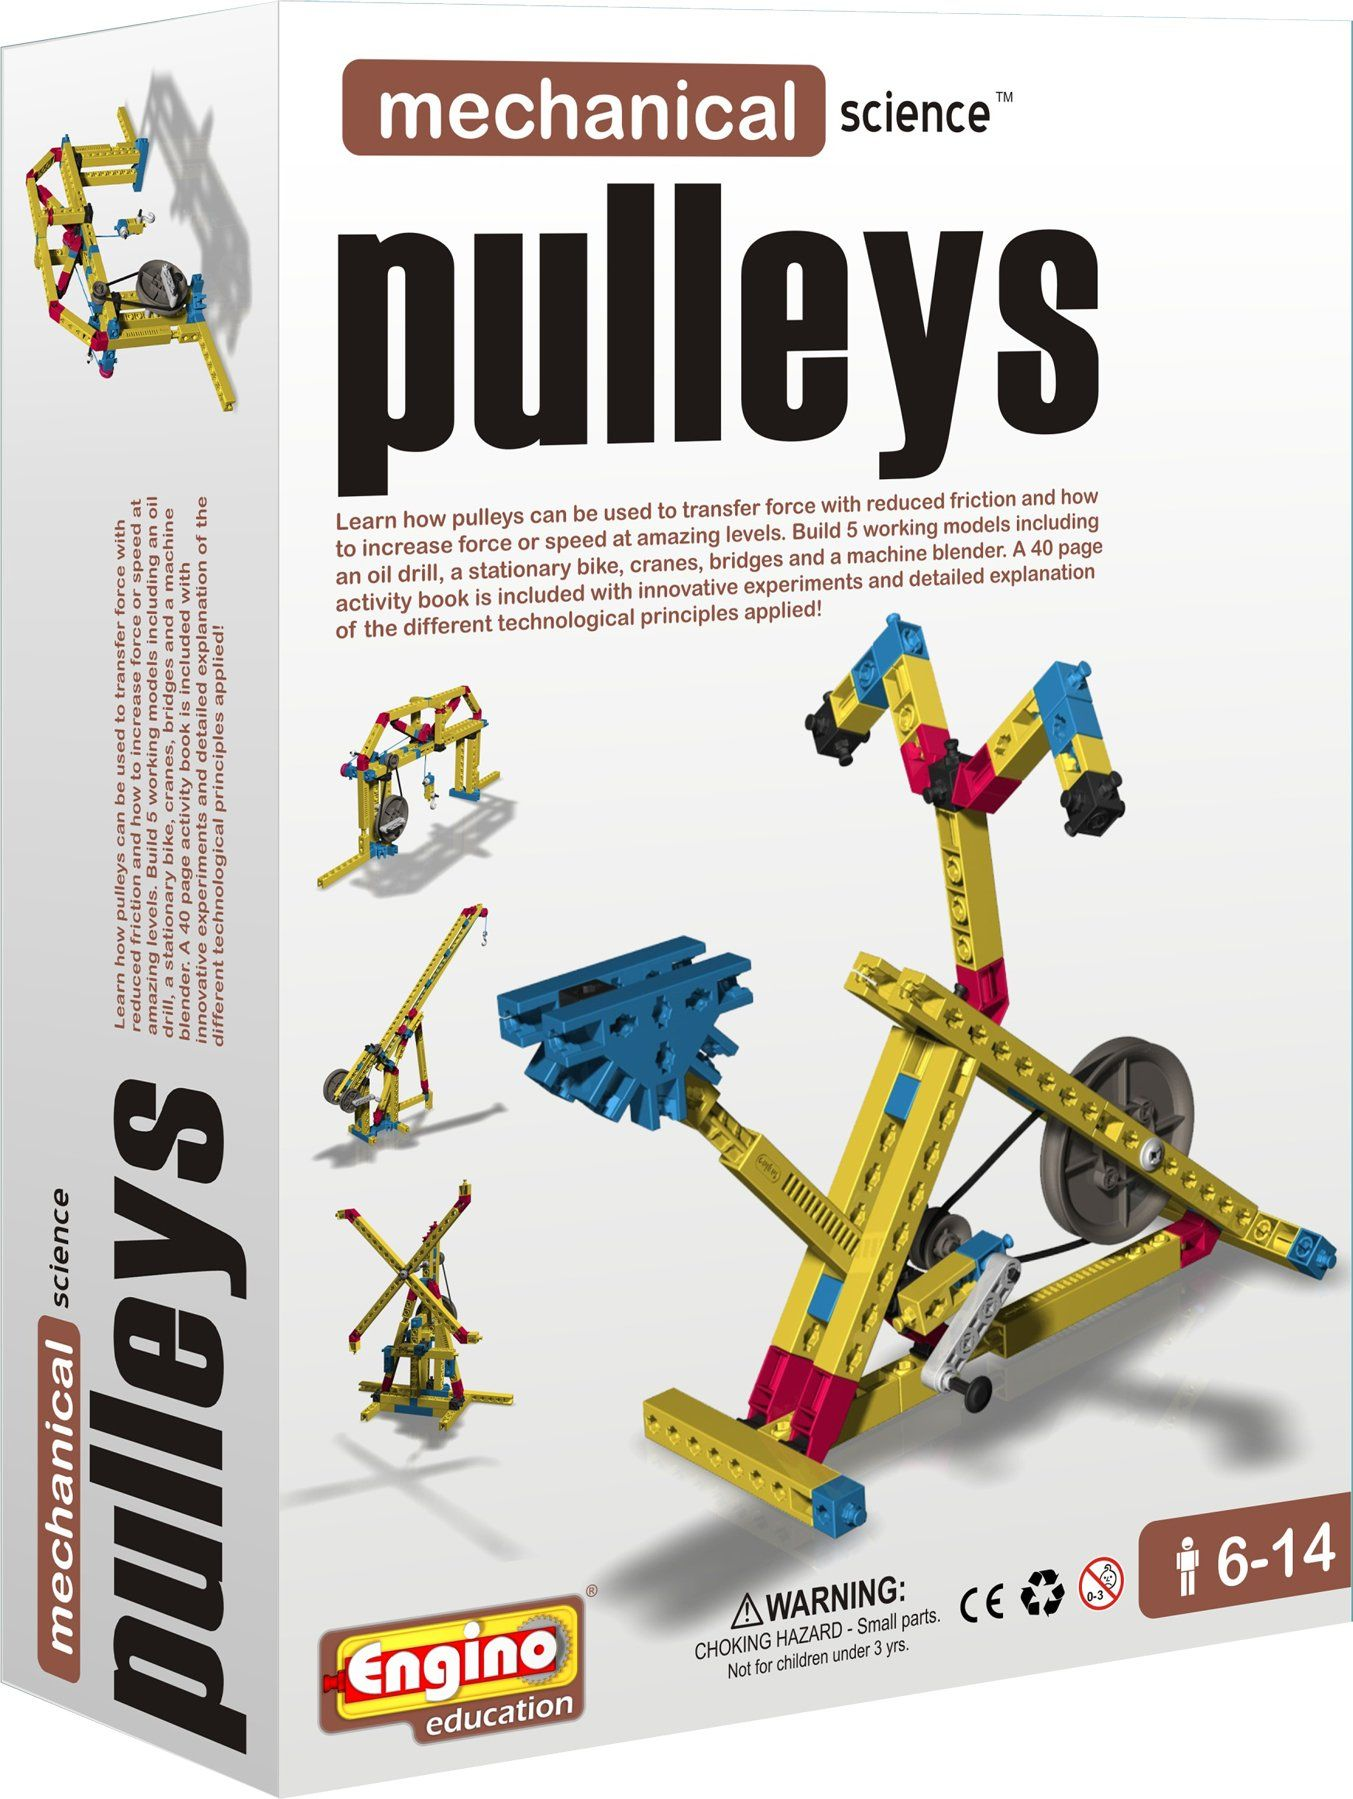 Engino mechanical science pulleys toys